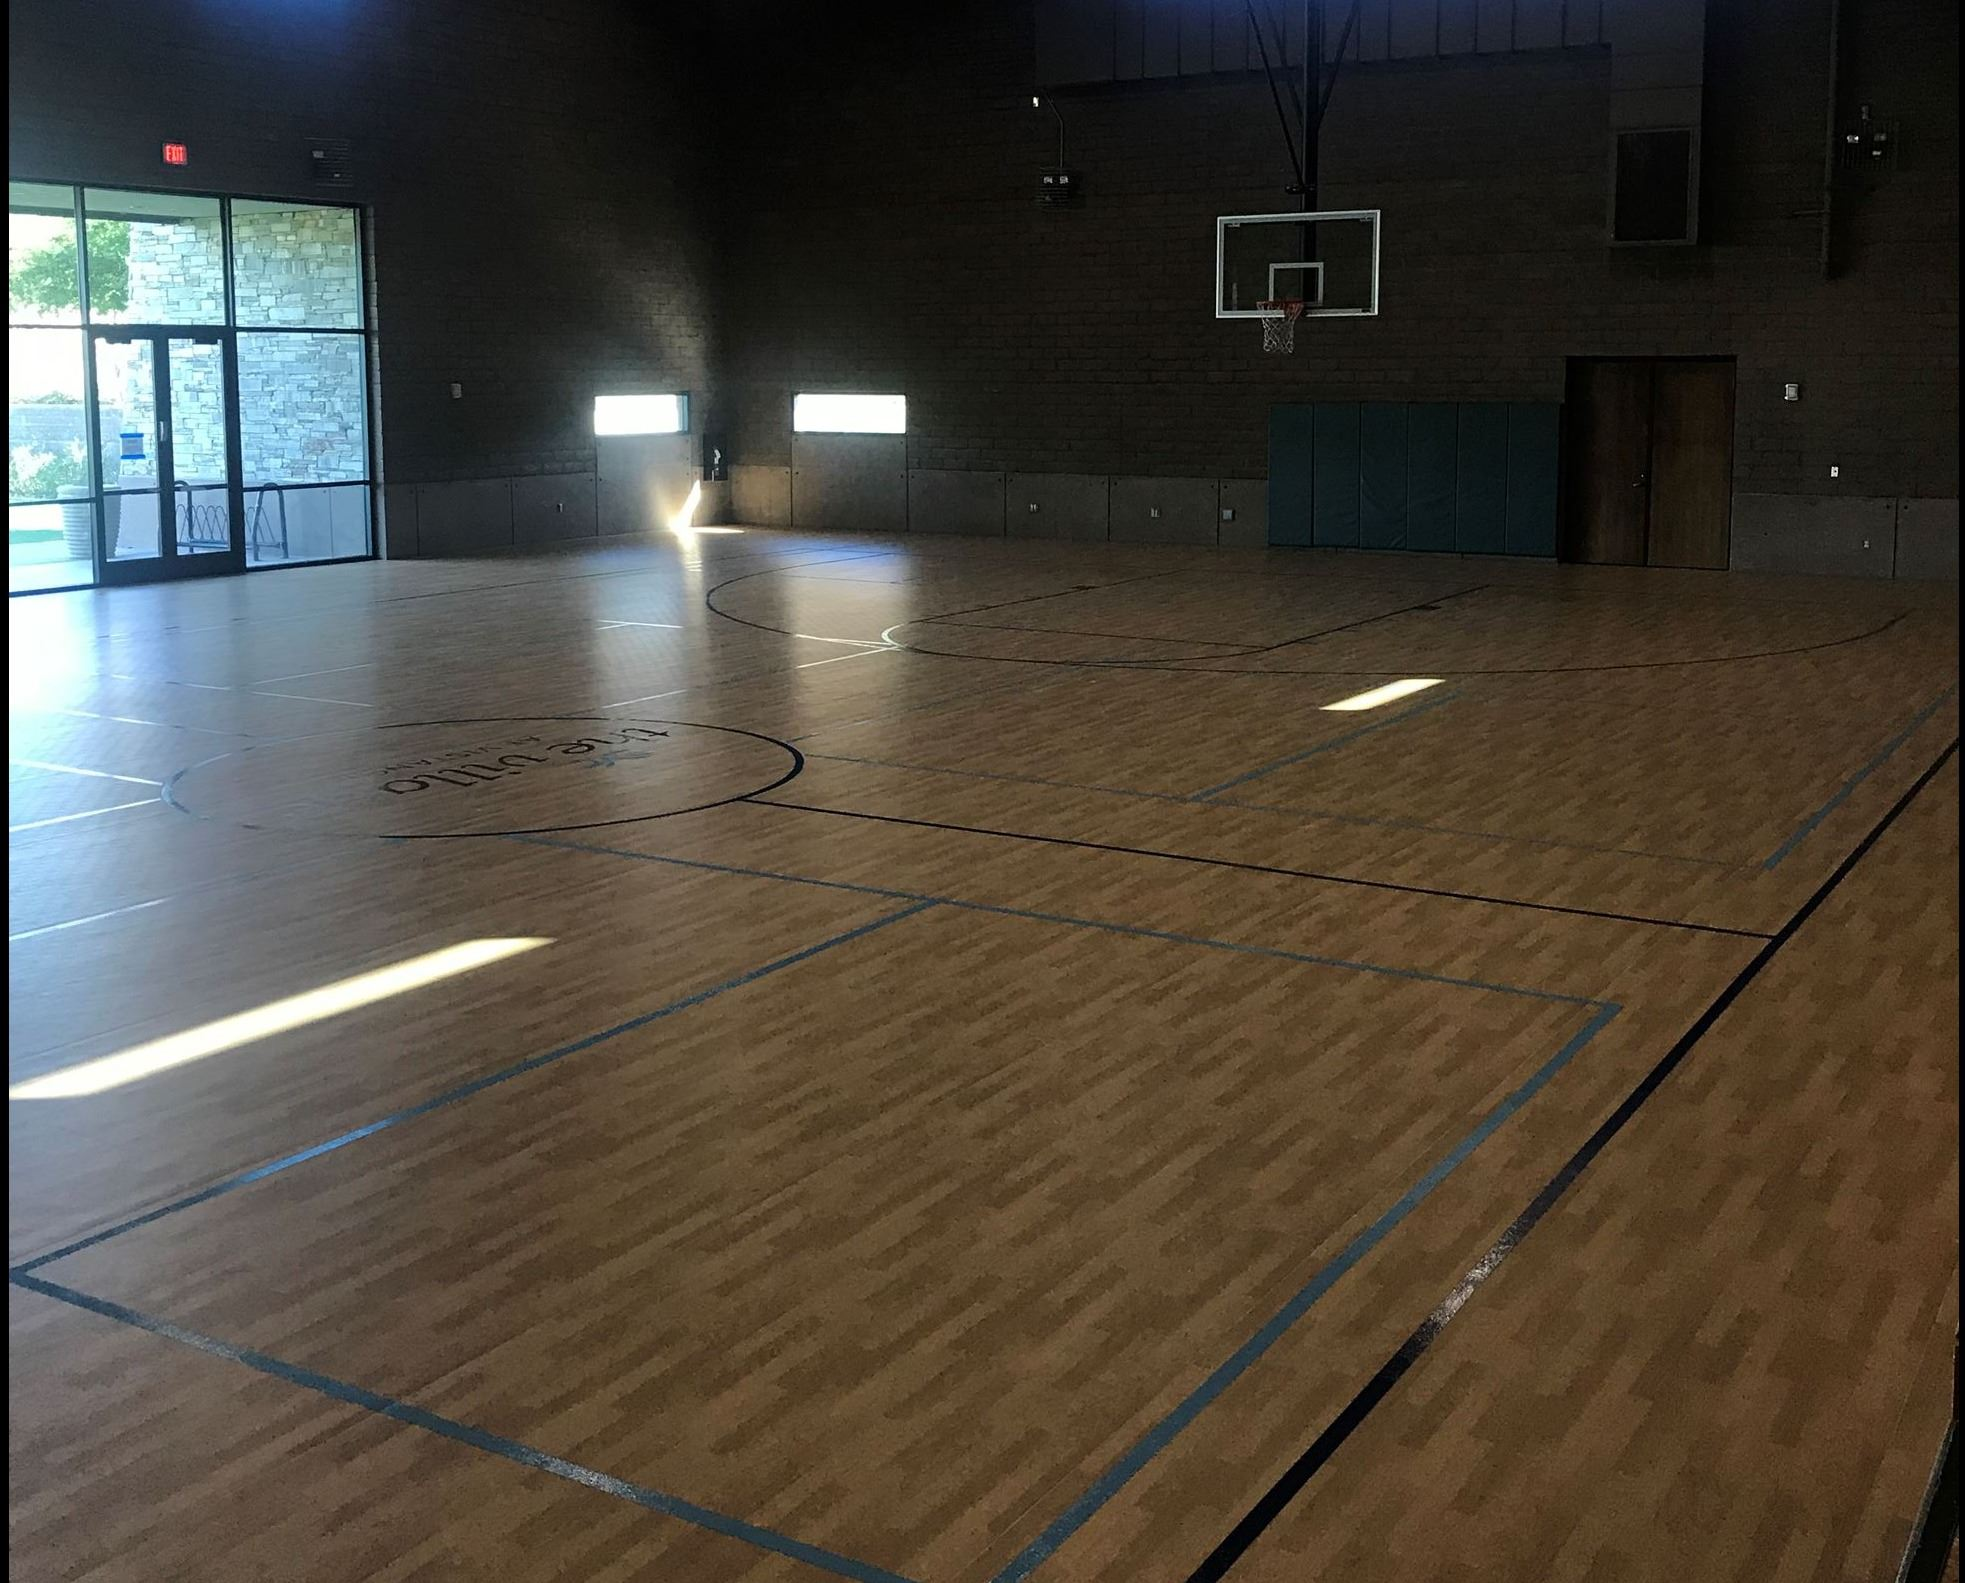 addthis space basketball buttons book gym lwcc manitoba how floor floors to sharing